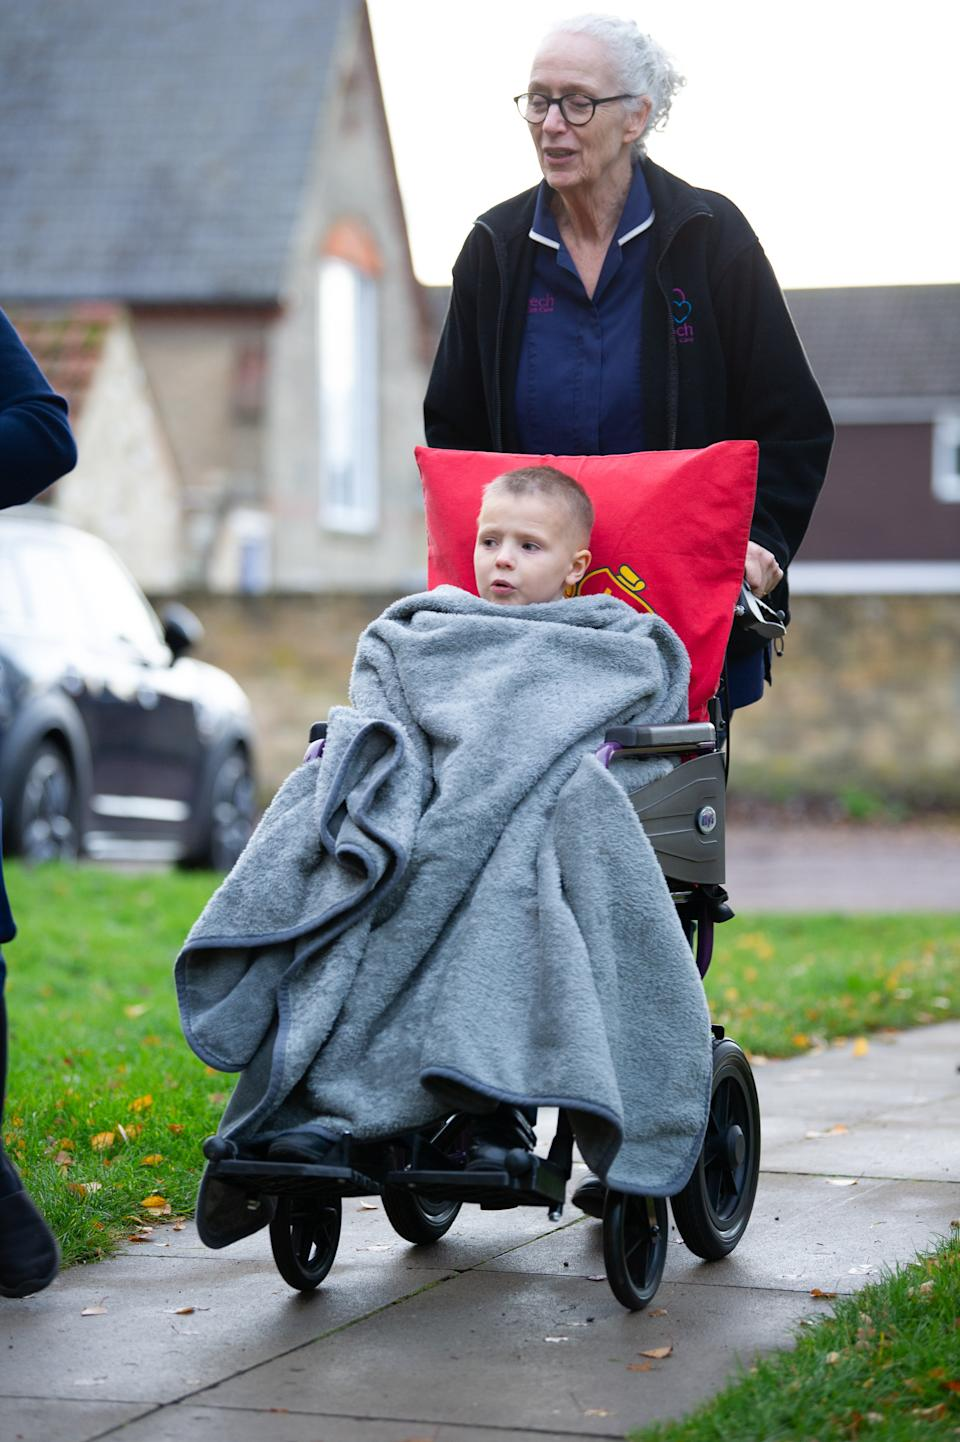 Eight year old Ethan Martin arrives at the church. [Photo: SWNS]